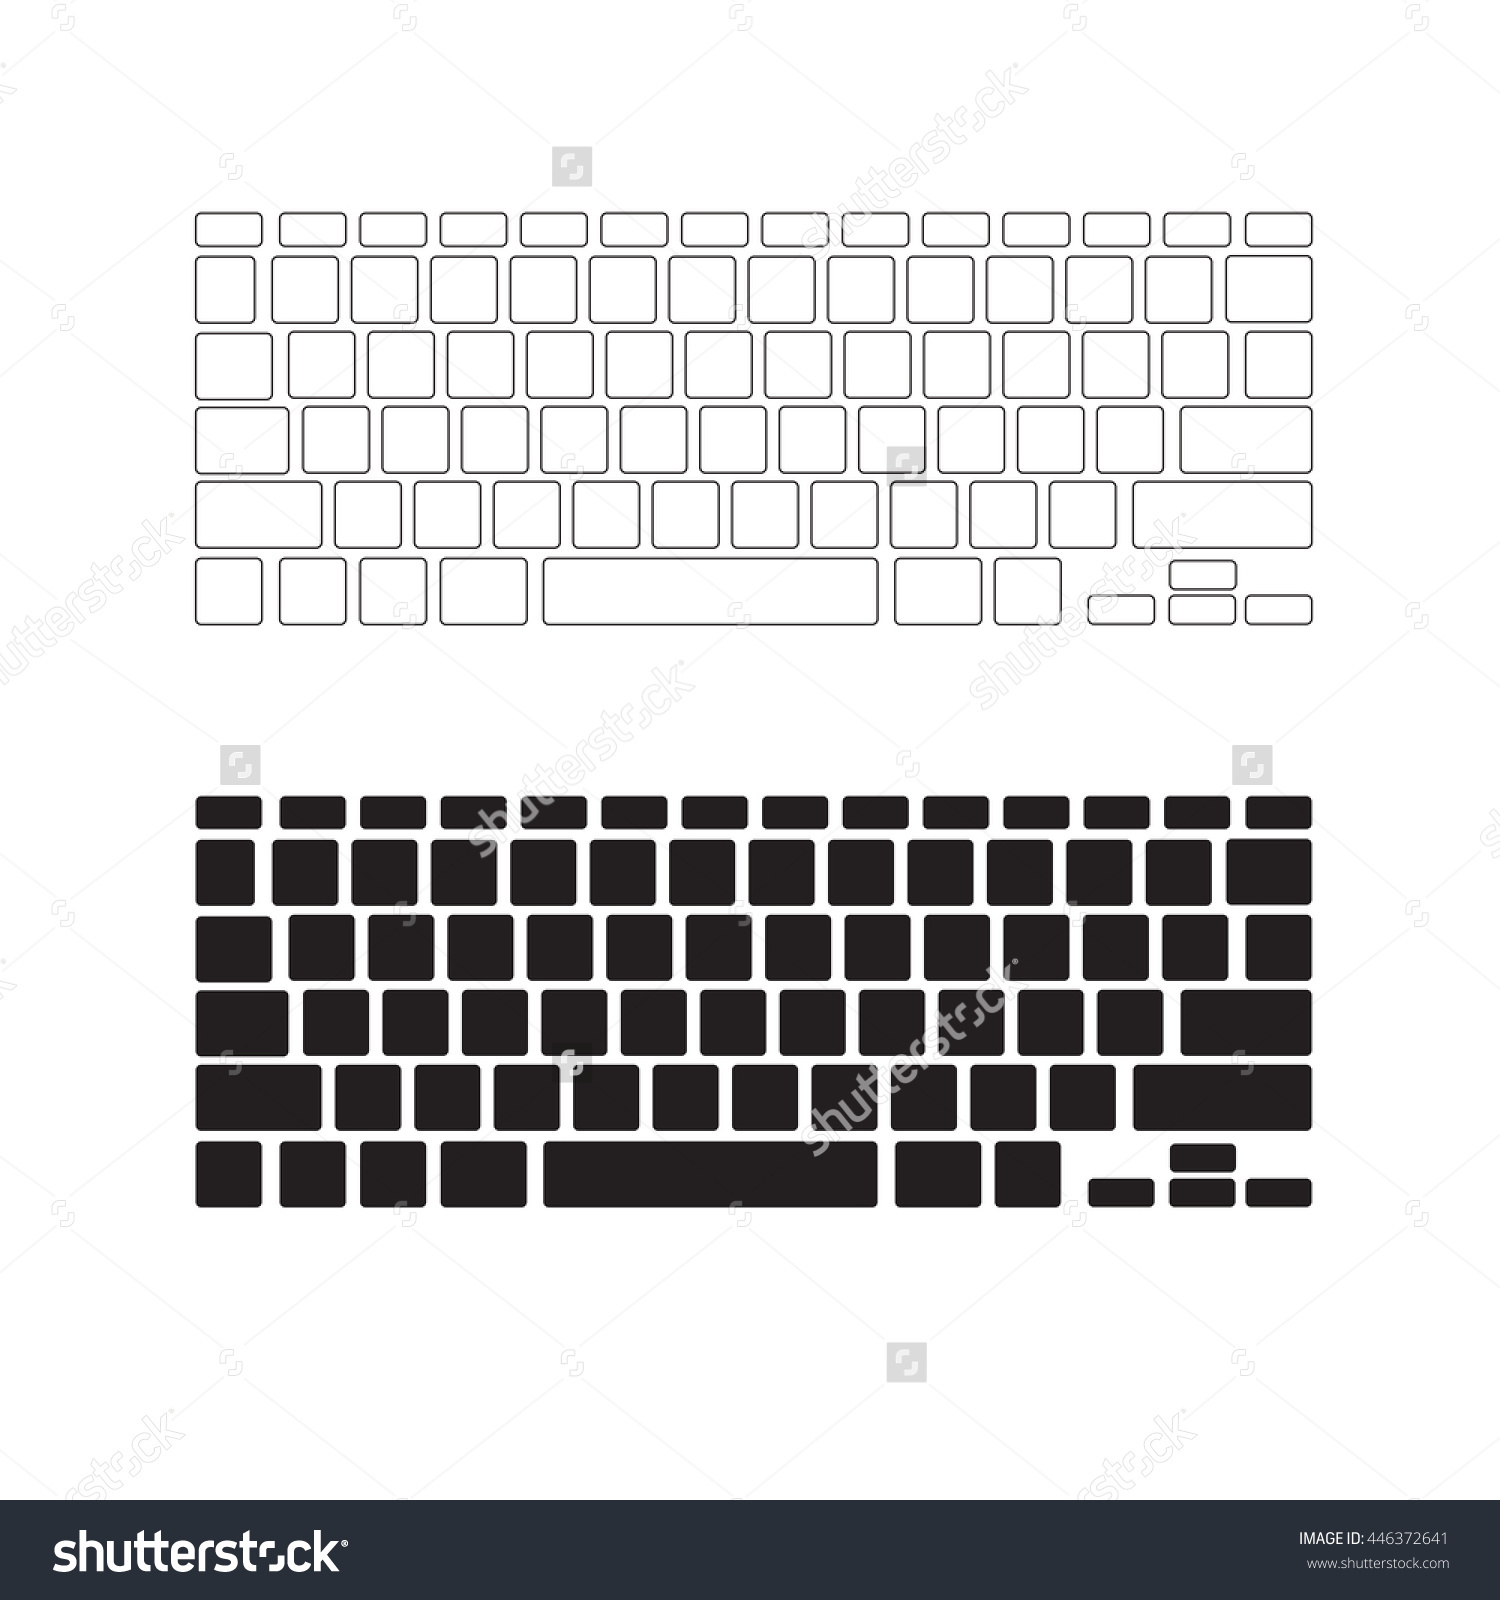 Blank lenovo computer keyboard clipart jpg library download Blank Keyboard Layout | April Calendar | April Calendar jpg library download